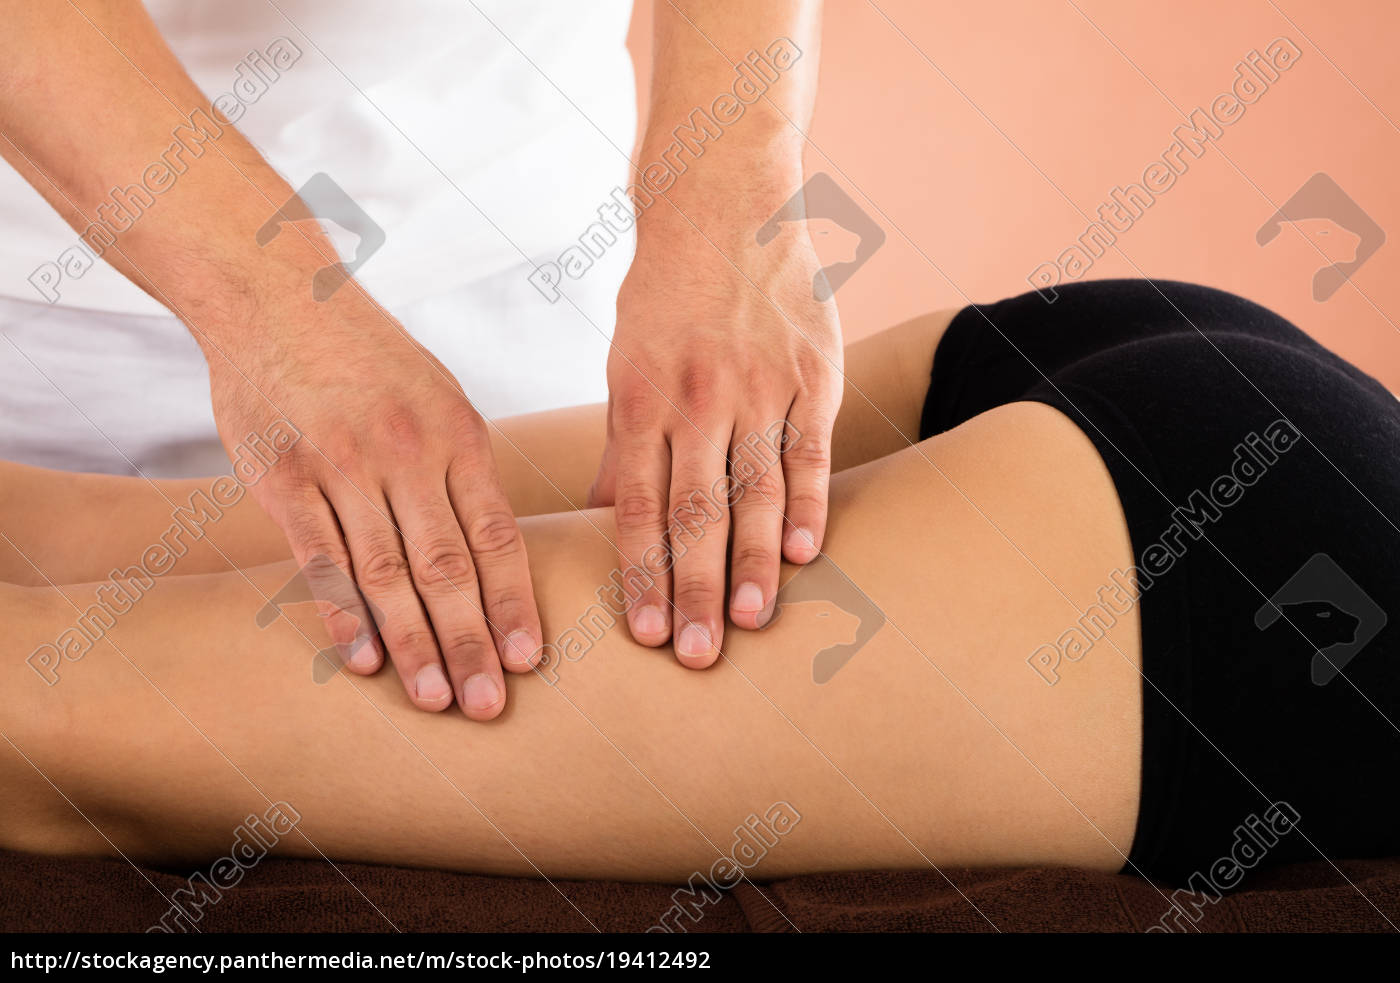 woman, receiving, leg, massage - 19412492